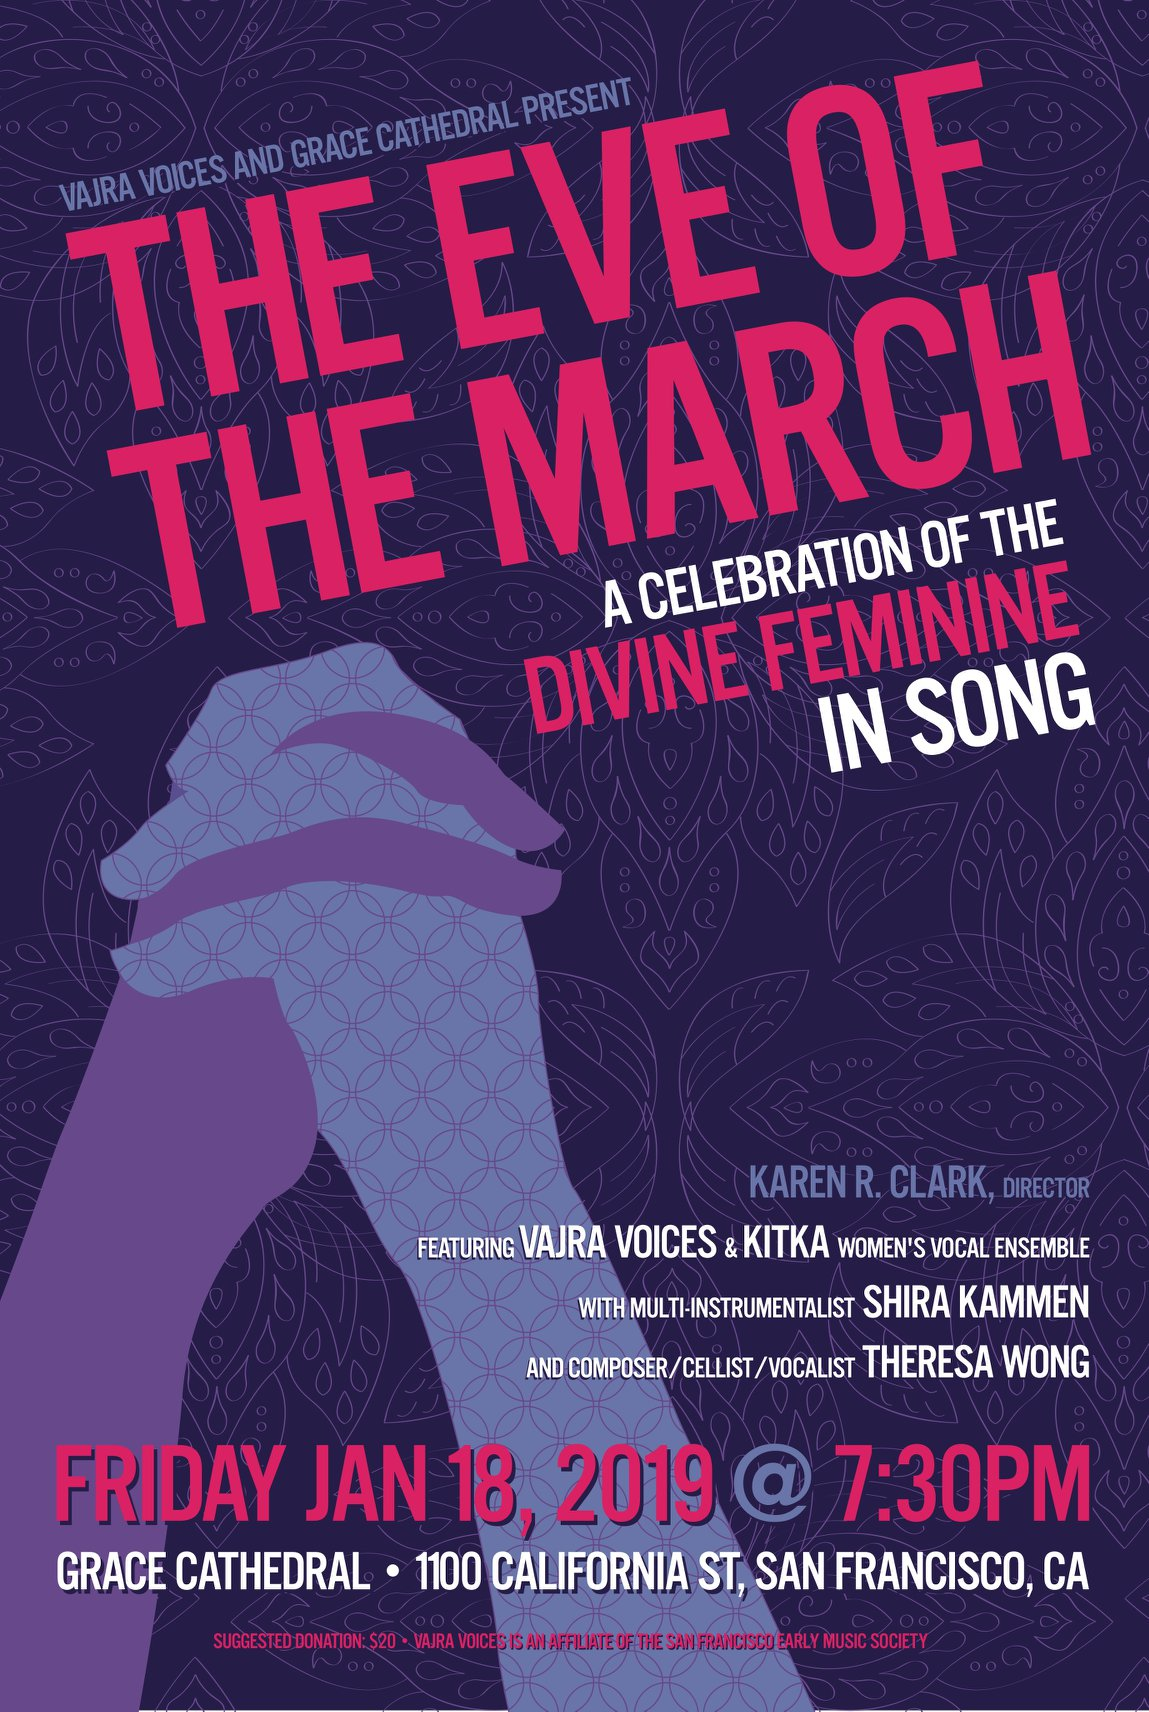 In honor and awe of the Women's March 2019, Vajra Voices & Kitka present The Eve of the March - a concert in the sacred space of Grace Cathedral where we will celebrate womens' voices and the power of community. This is going to be quite a night! Join Vajra Voice, Kitka, multi-instrumentalist Shira Kammen and yours truly - I'll be premiering  To Burst To Bloom  - 6 songs setting the texts of the 12th Century Chinese female Toaist, Sun Bu'er.  Tickets available here.